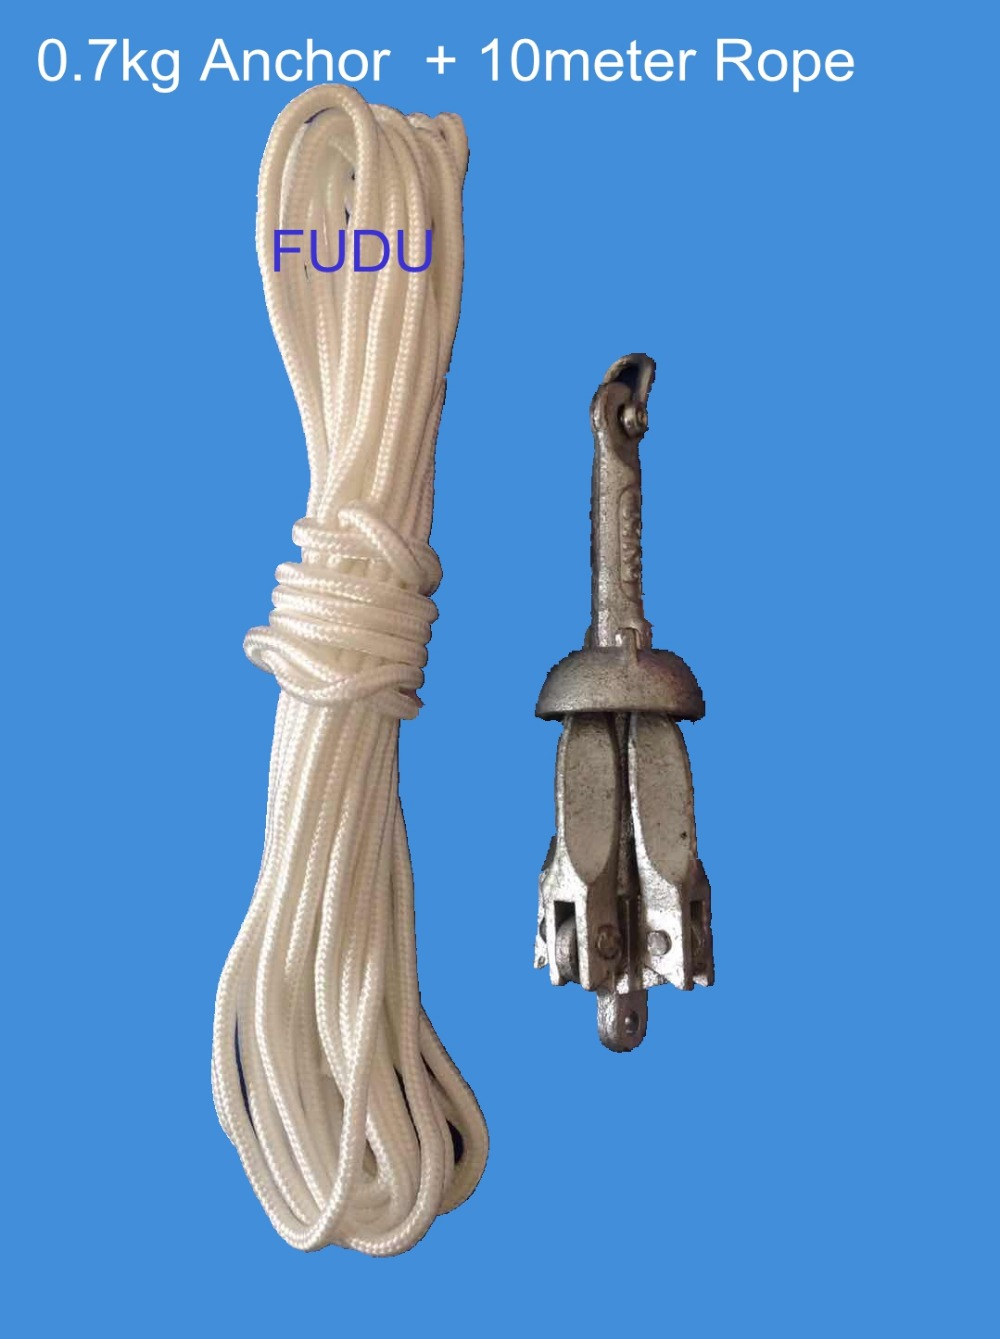 Folding Boat  Anchor 1.5 Lb 0.7 Kg Galvanized Iron with 10m rope